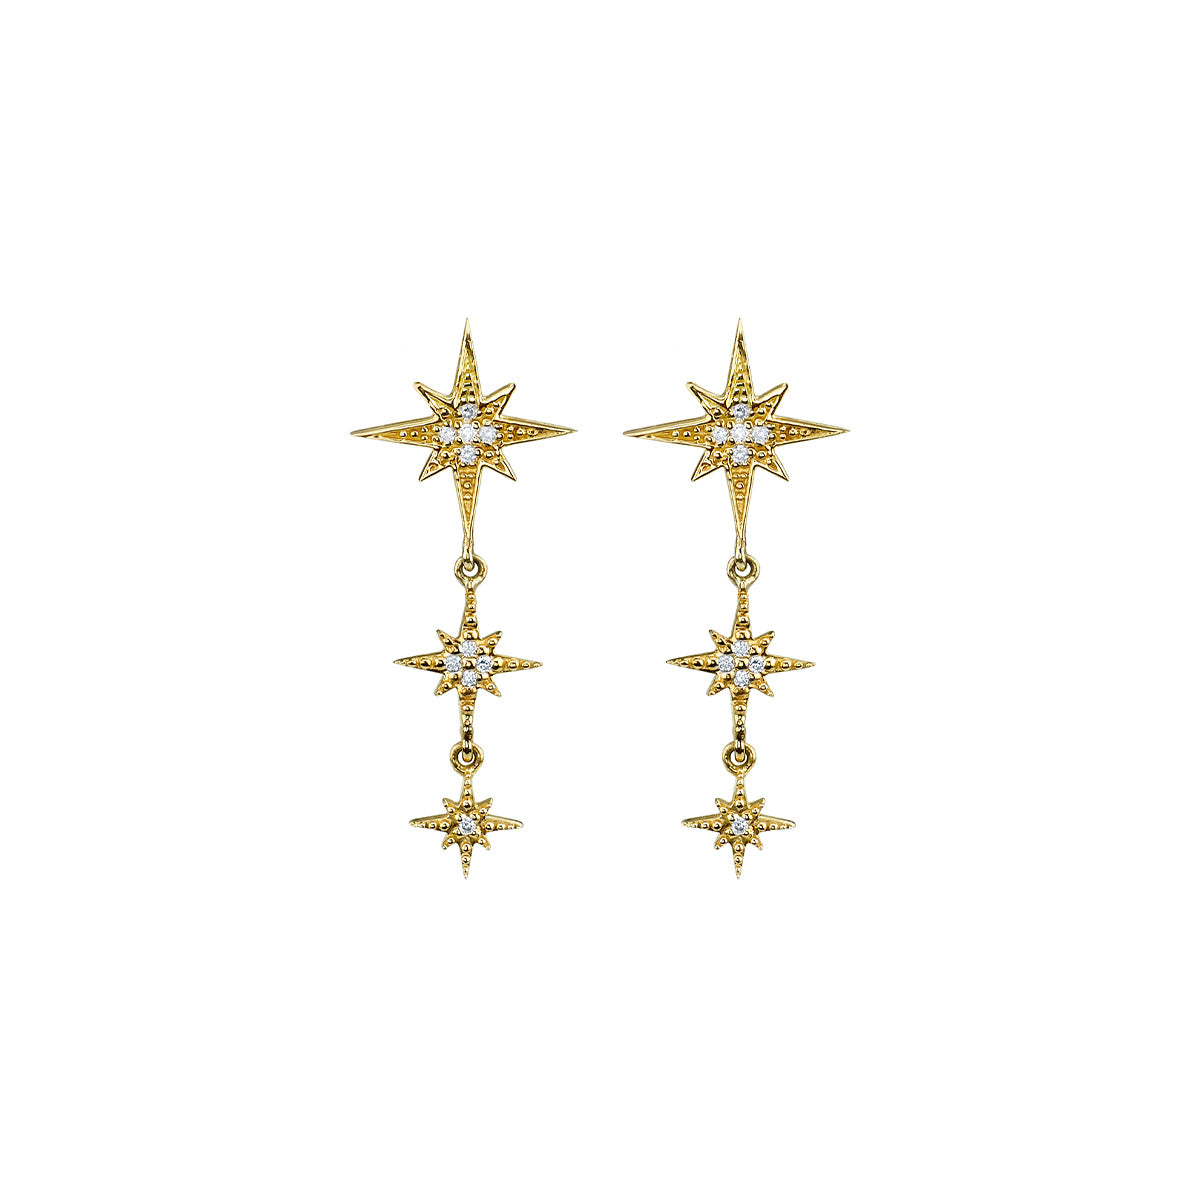 Starburst 3 Drop Earrings